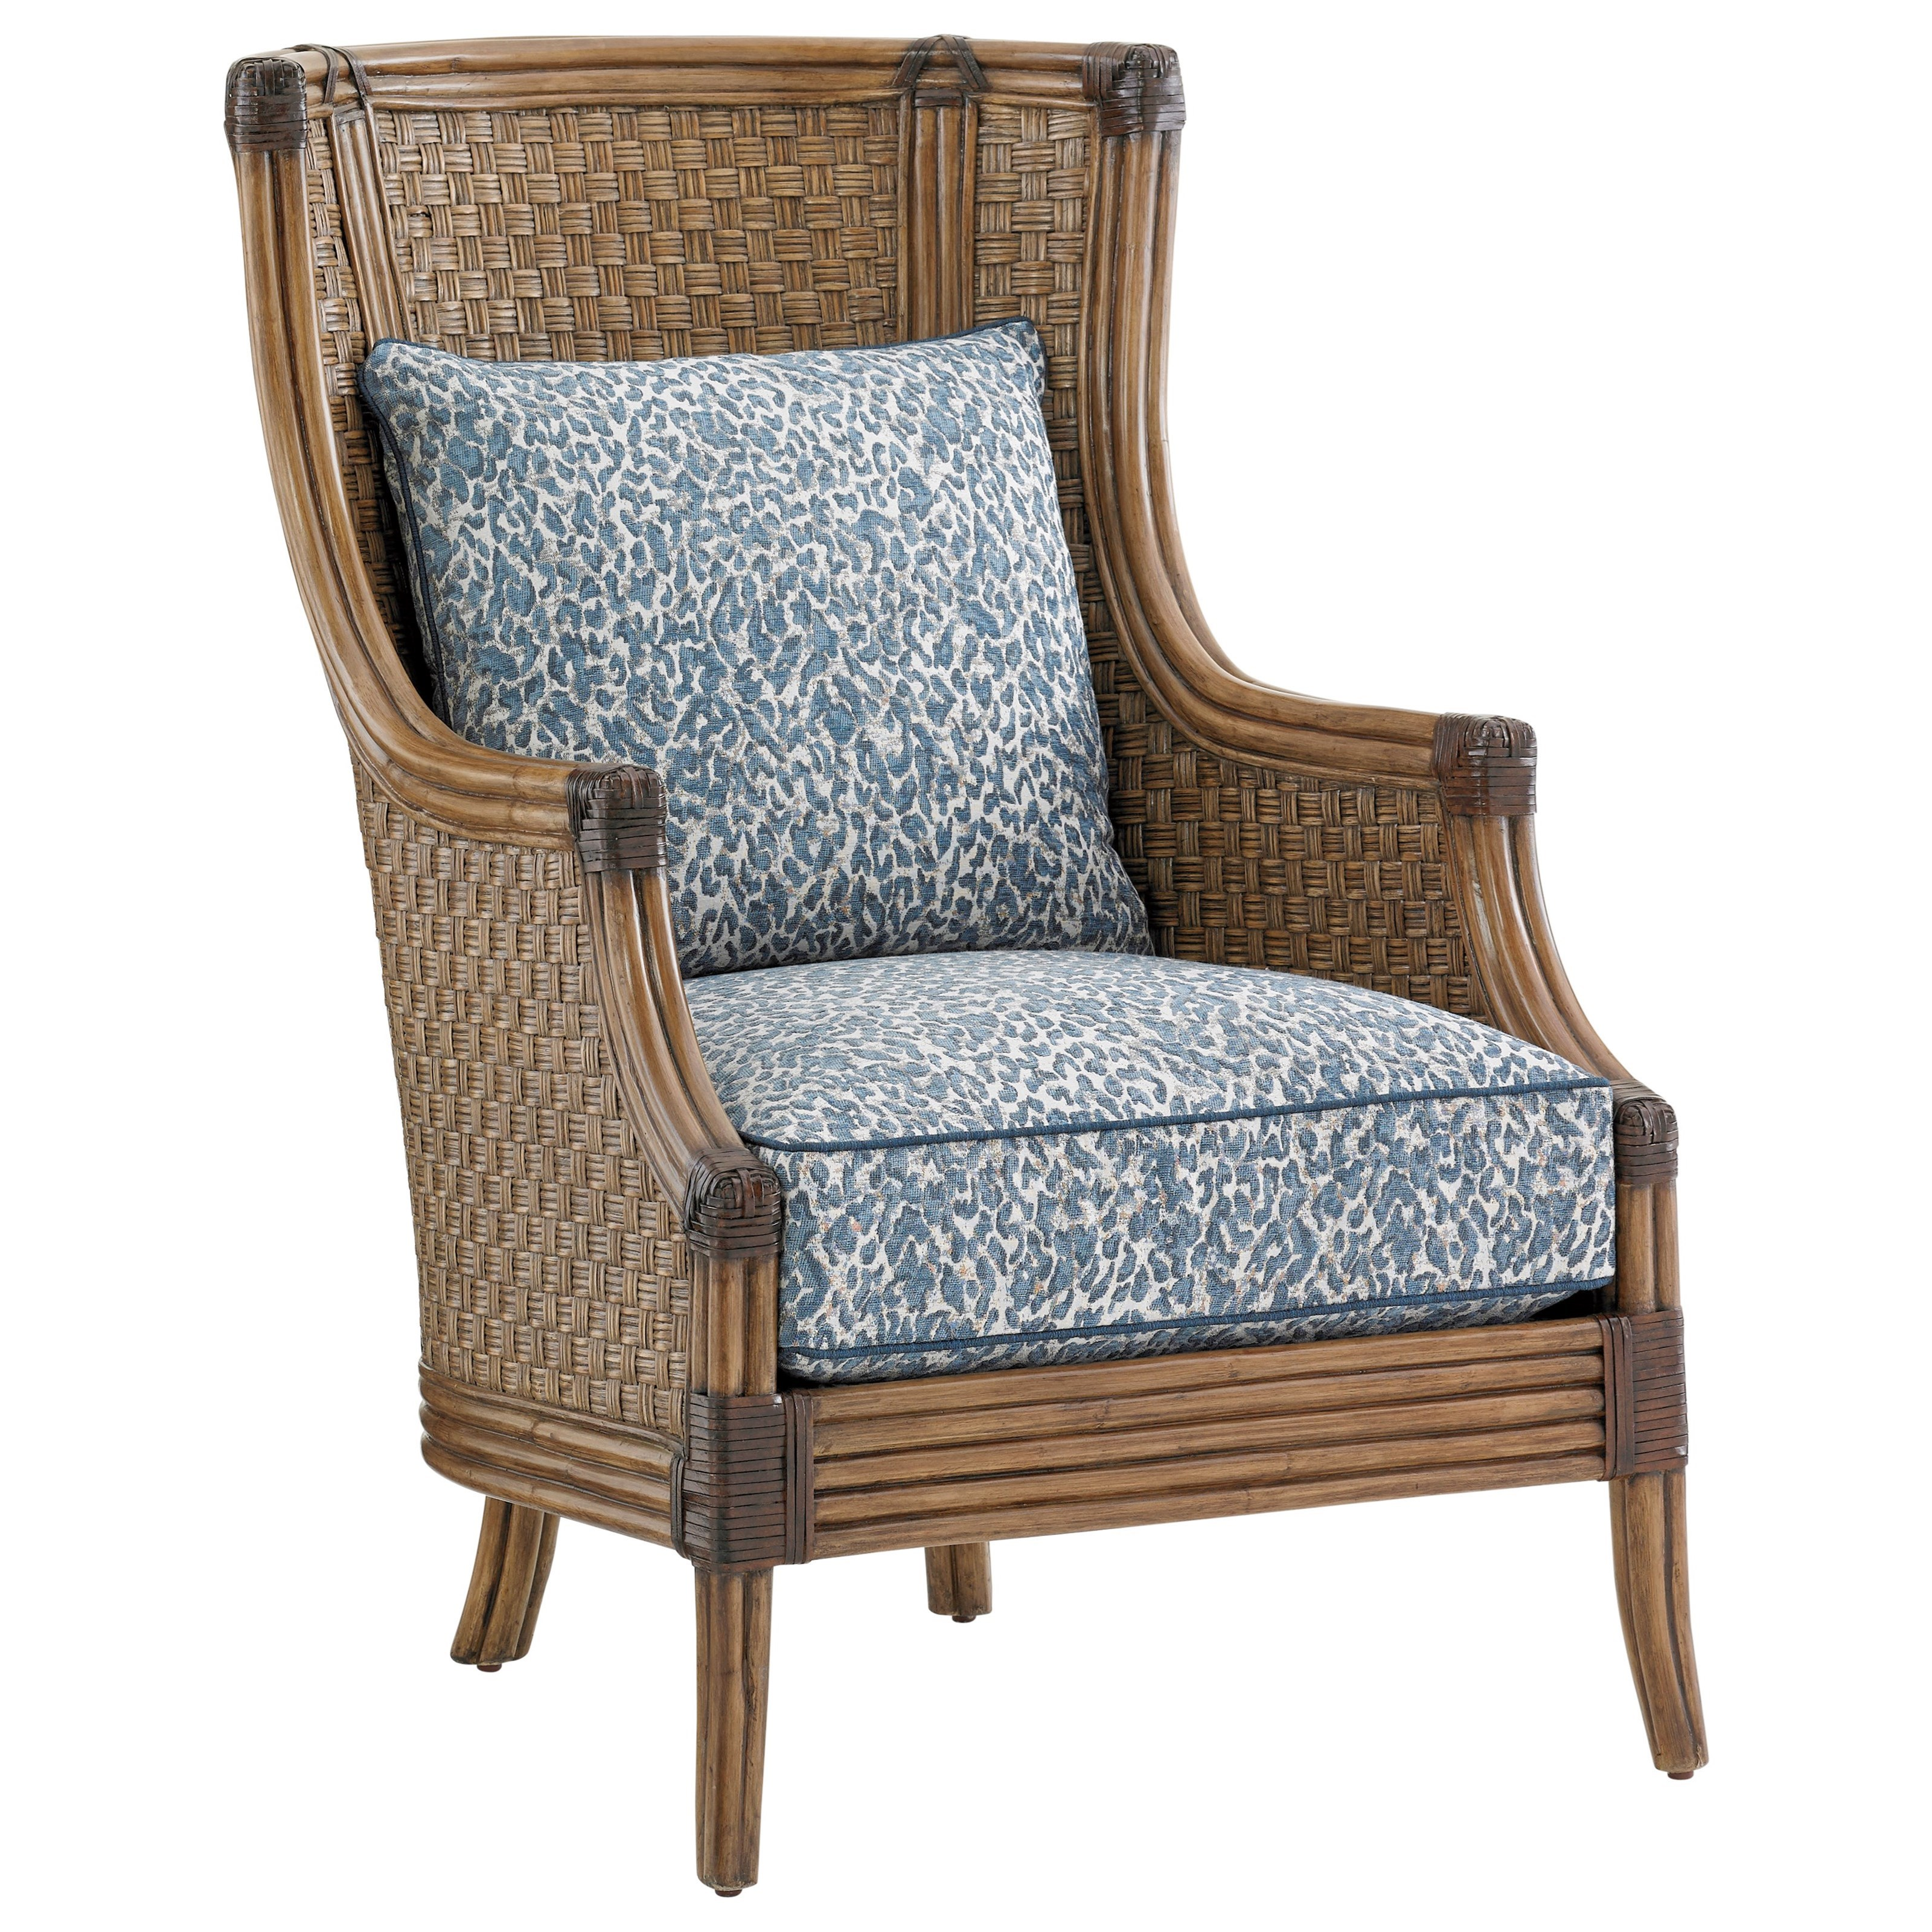 Twin Palms Coral Reef Chair by Tommy Bahama Home at Baer's Furniture